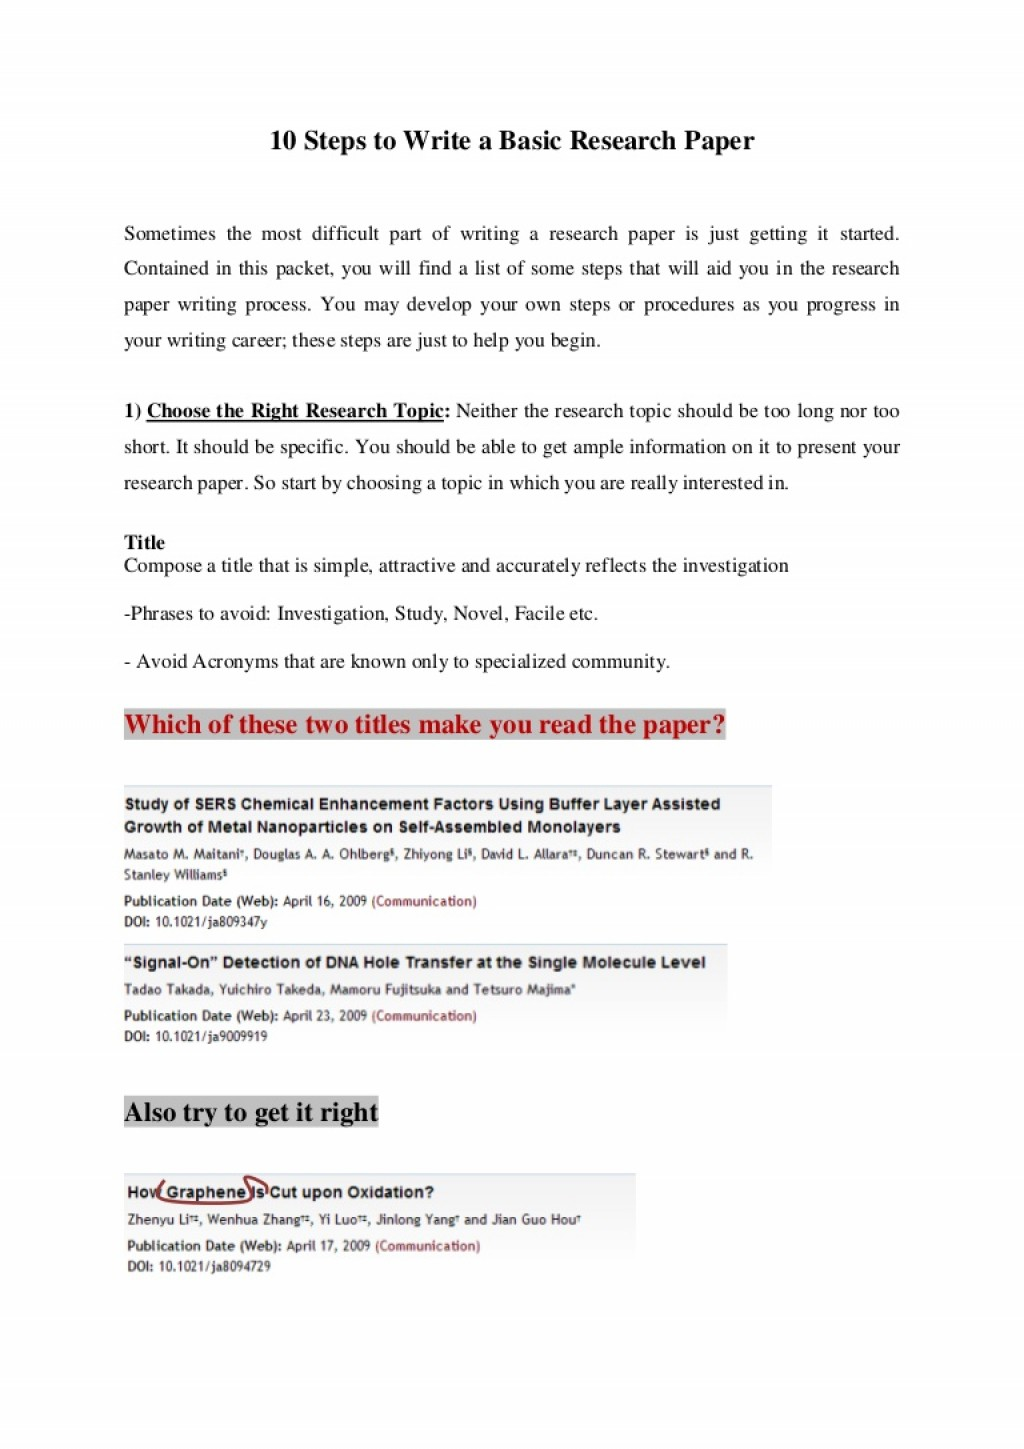 006 10stepstowriteabasicresearchpaper Thumbnail Research Paper How To Sensational Start Way Presentation A Intro Example Large